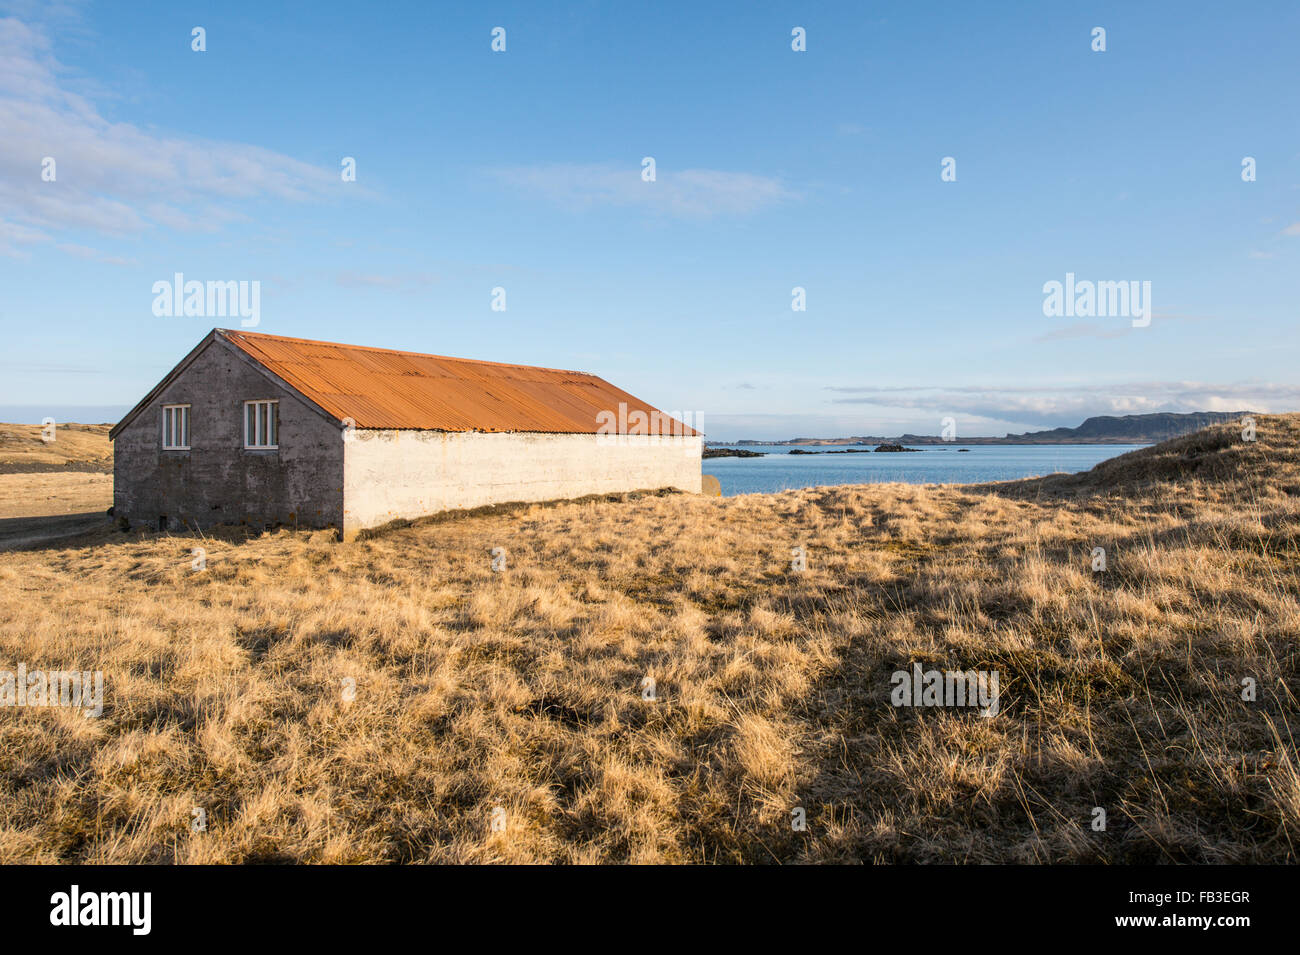 Old Icelandic shelter on a farm near a fjord Stock Photo